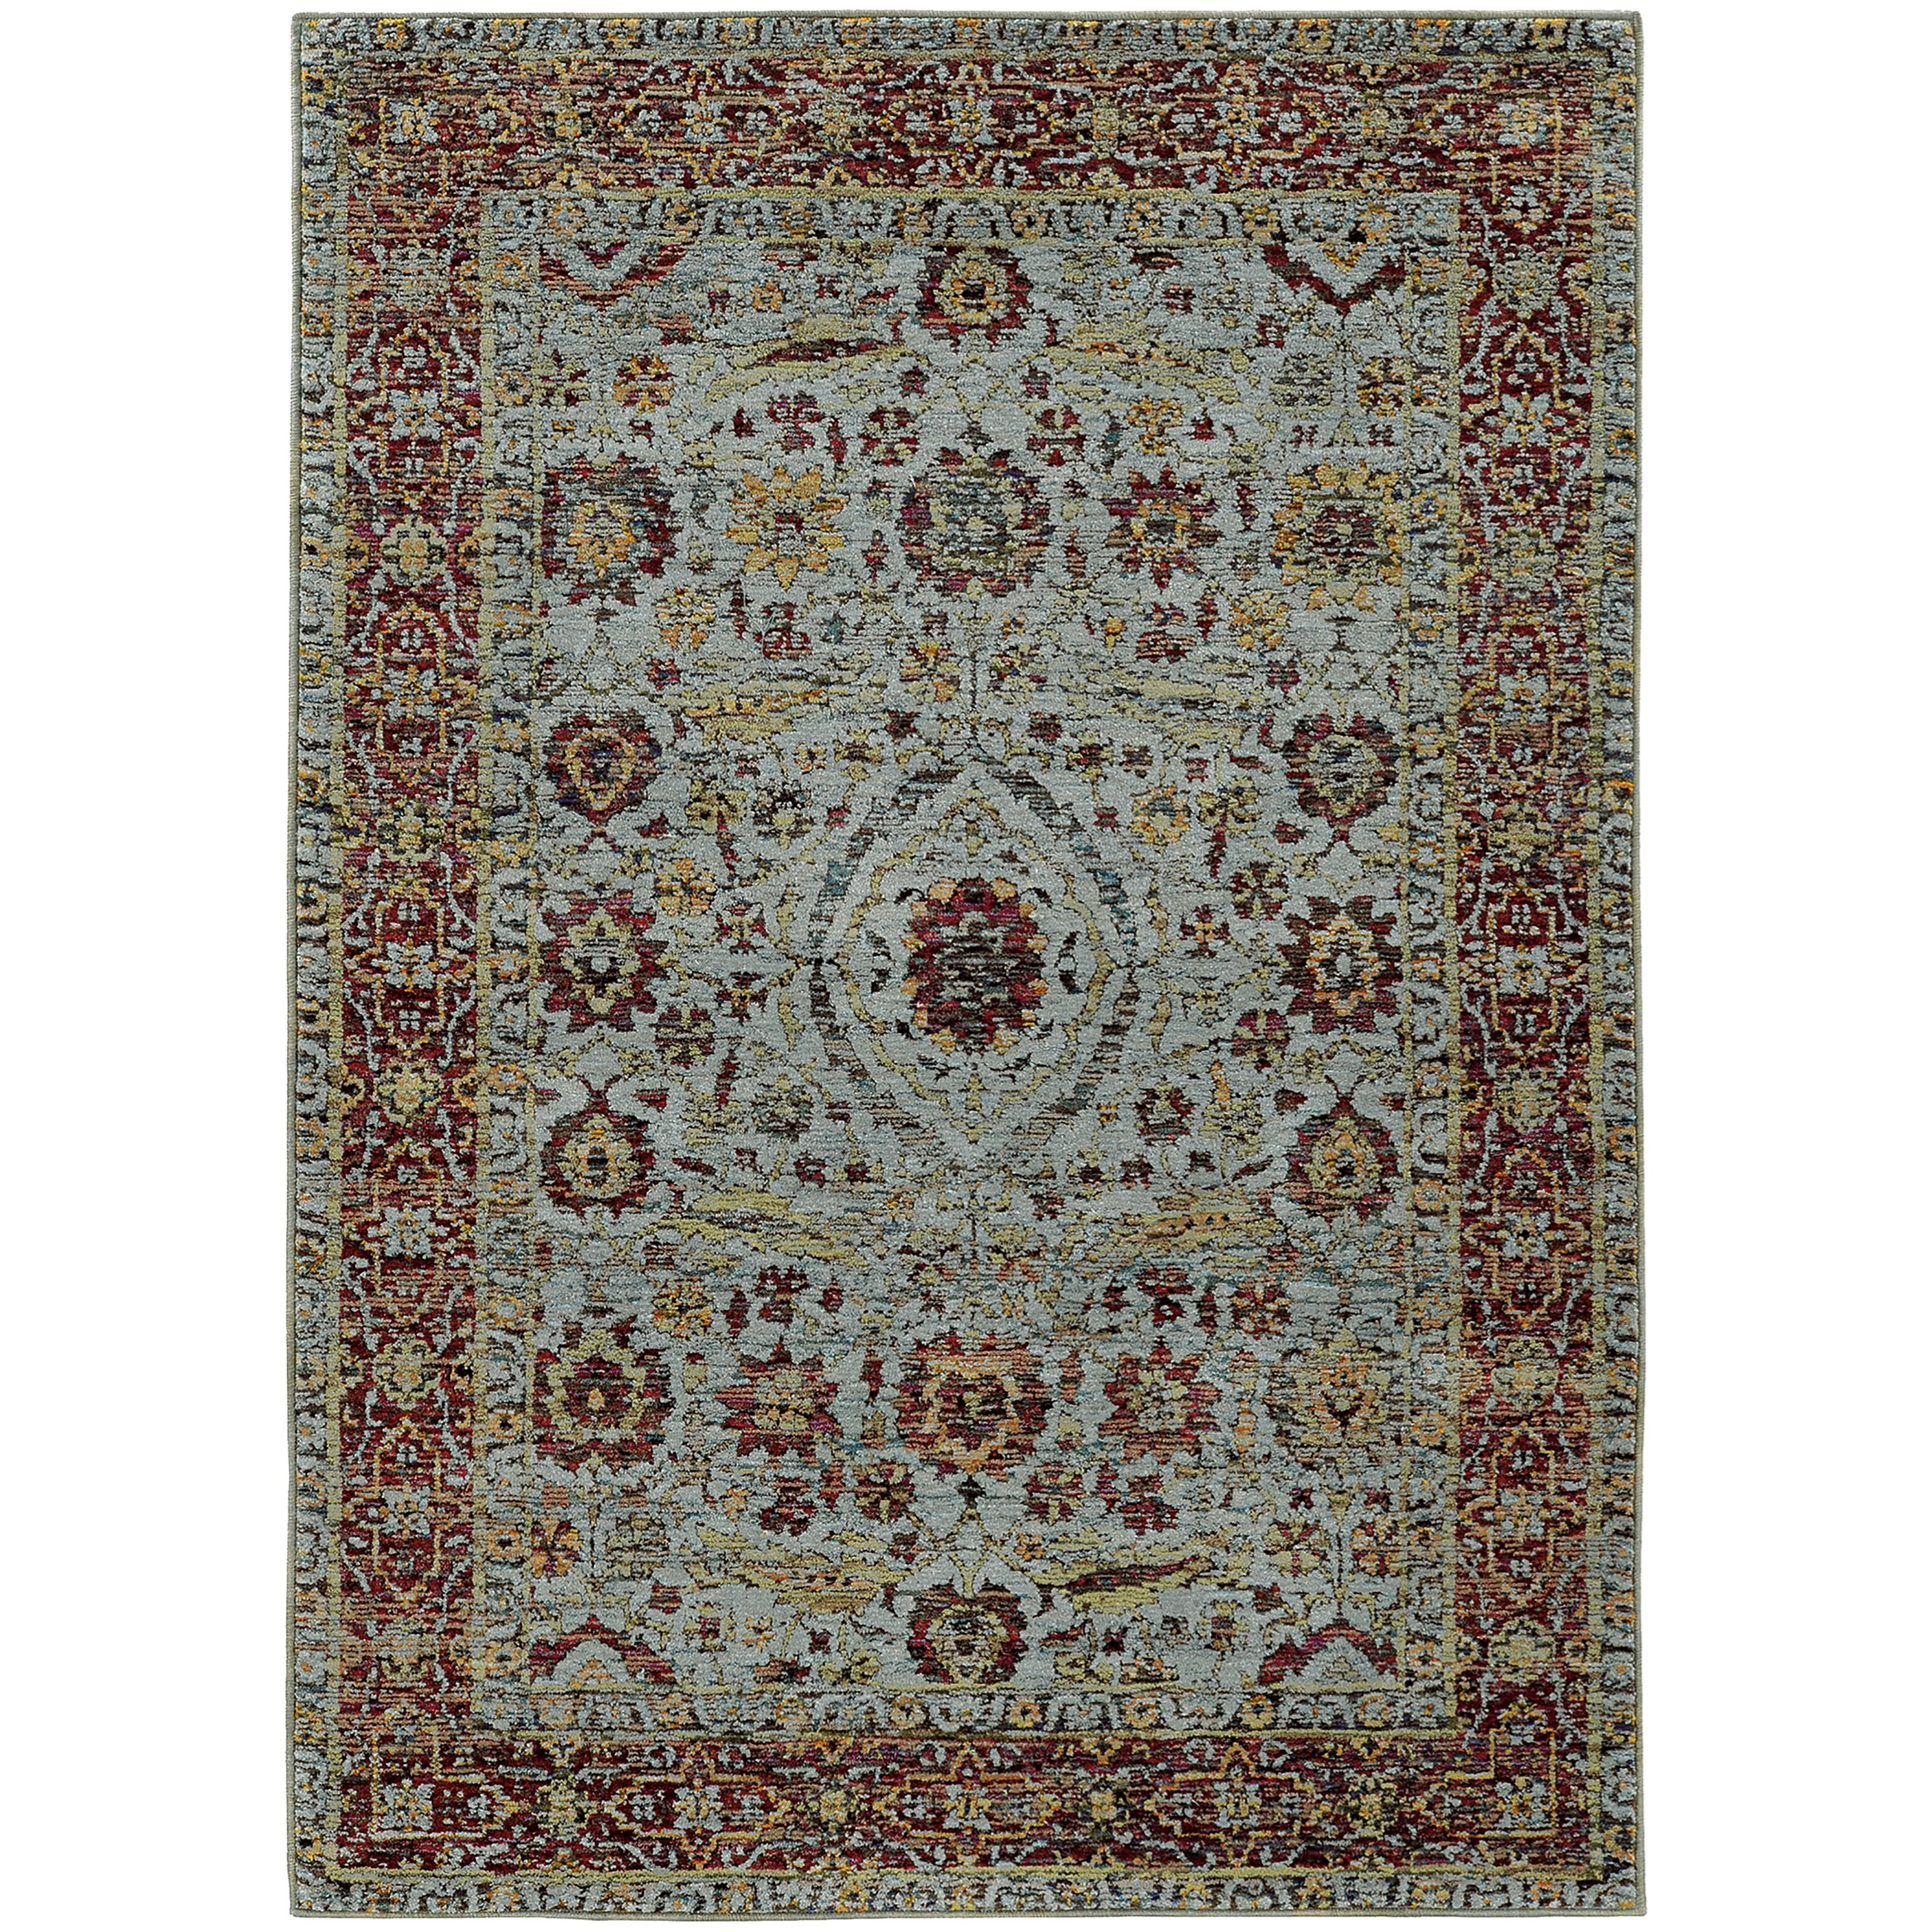 "Andorra 3' 3"" X  5' 2"" Casual Blue/ Red Rectangle Ru by Oriental Weavers at Steger's Furniture"